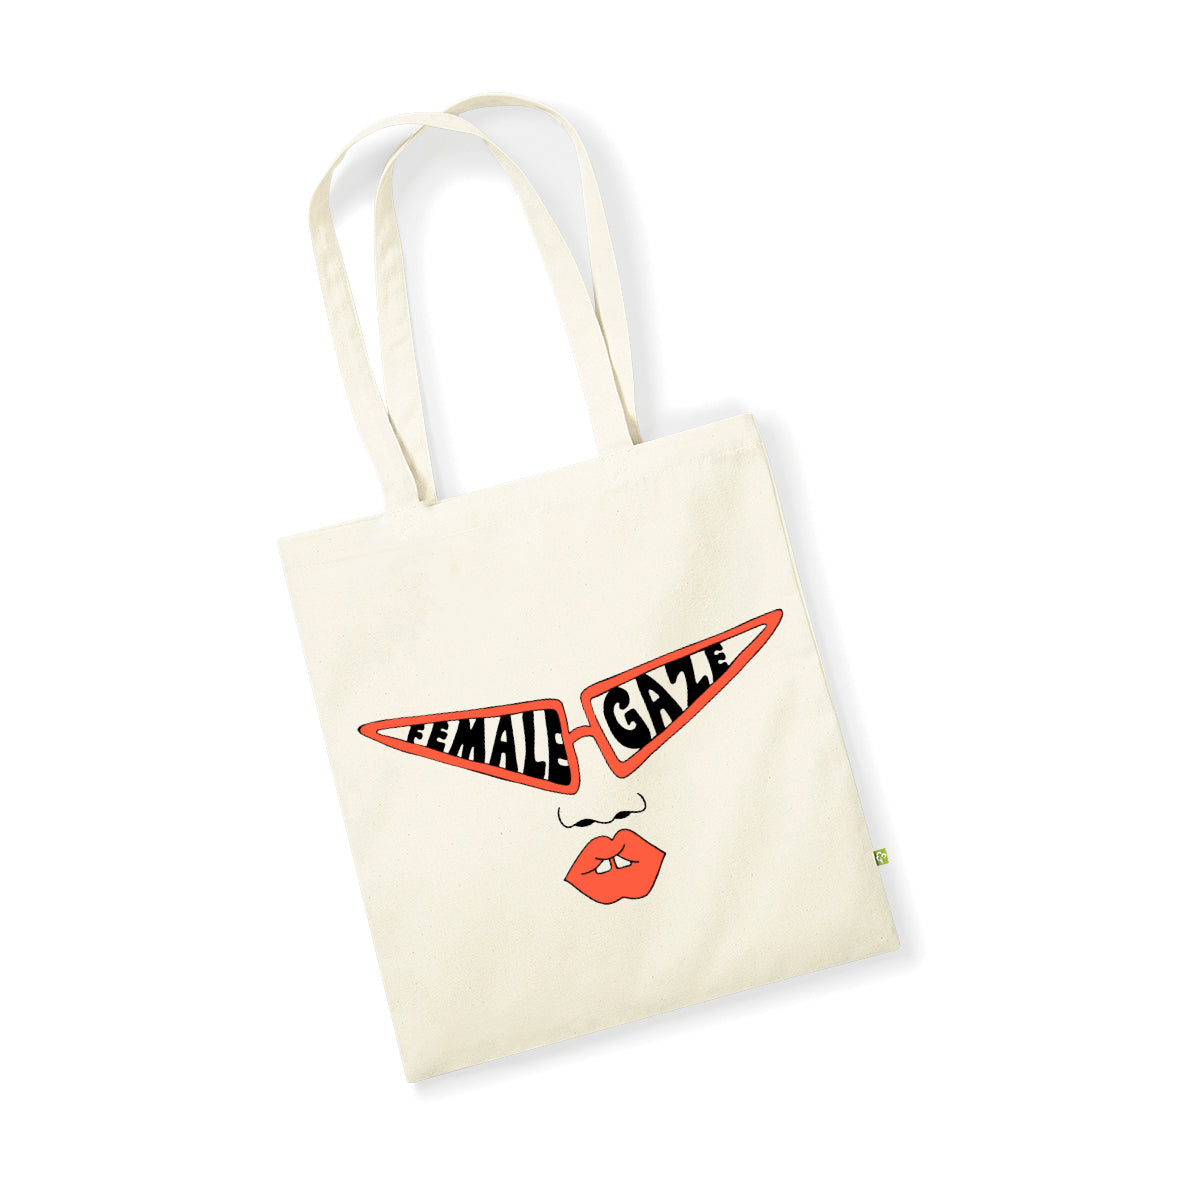 Female Gaze - Tote Bag